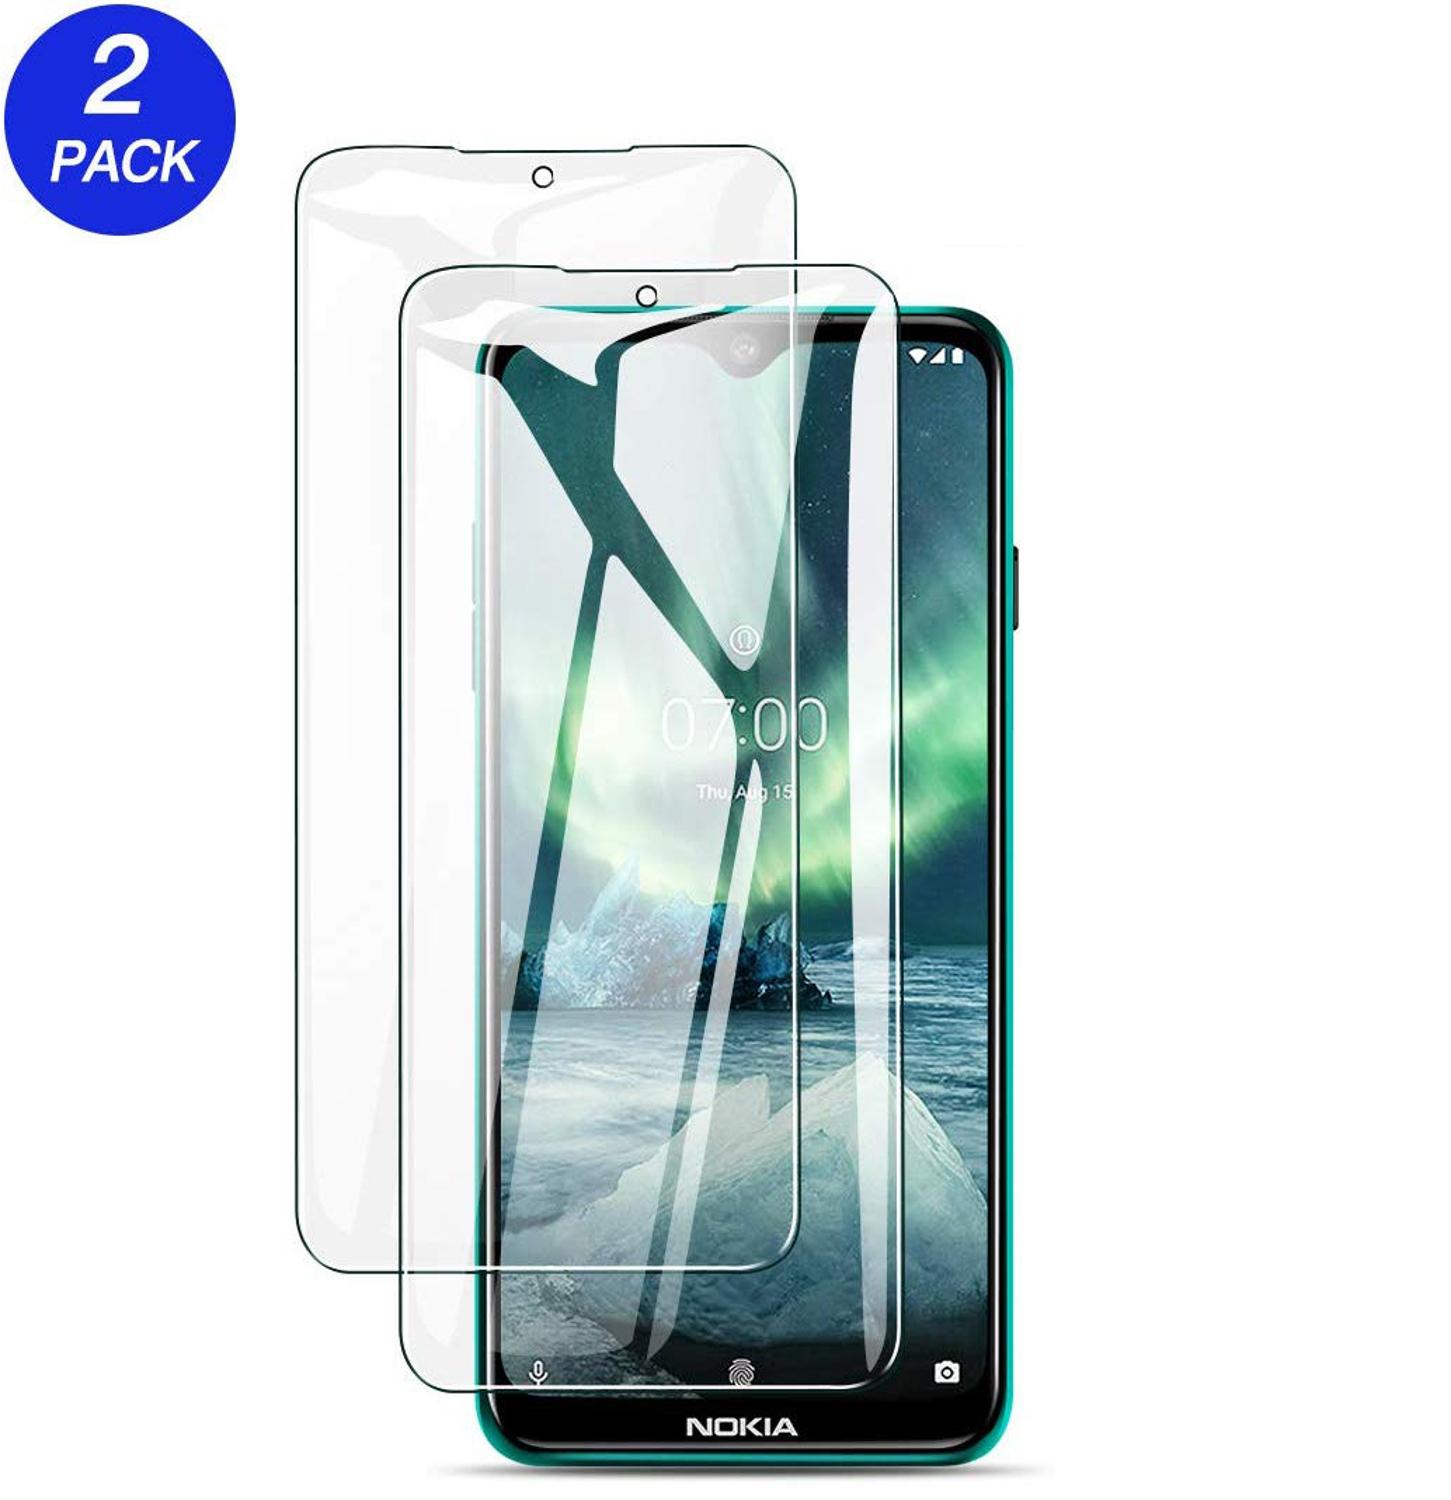 2PCS/lot Tempered Glass For Nokia 7.2 Screen Protector Potective Film For Nokia 7.2 TA-1196 TA-1181 TA-1178 TA-1193 Nokia 6.2